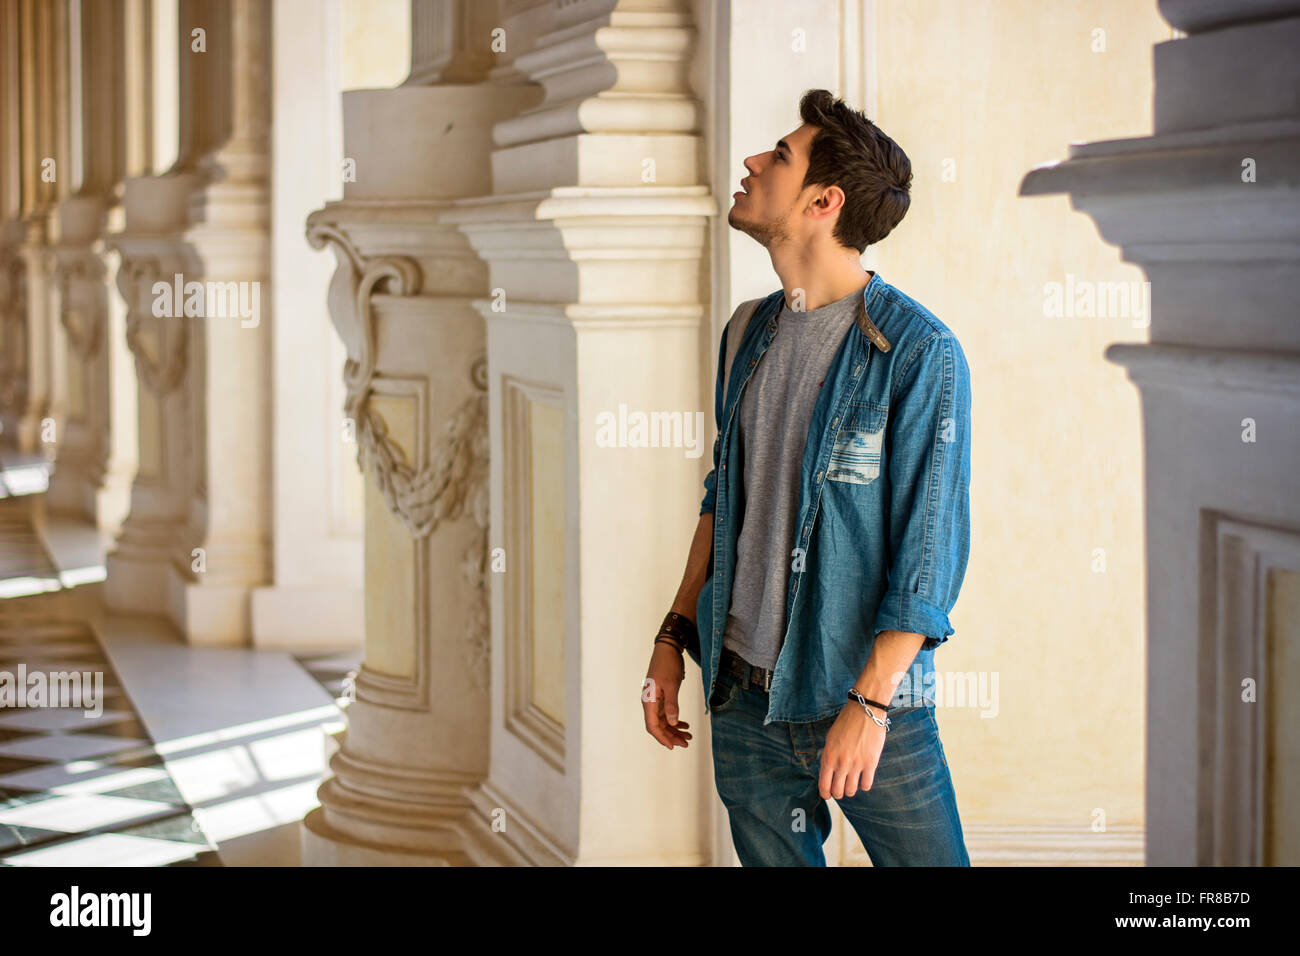 Half Body Shot of a Thoughtful Handsome Young Man, Looking Away Inside a Museum - Stock Image